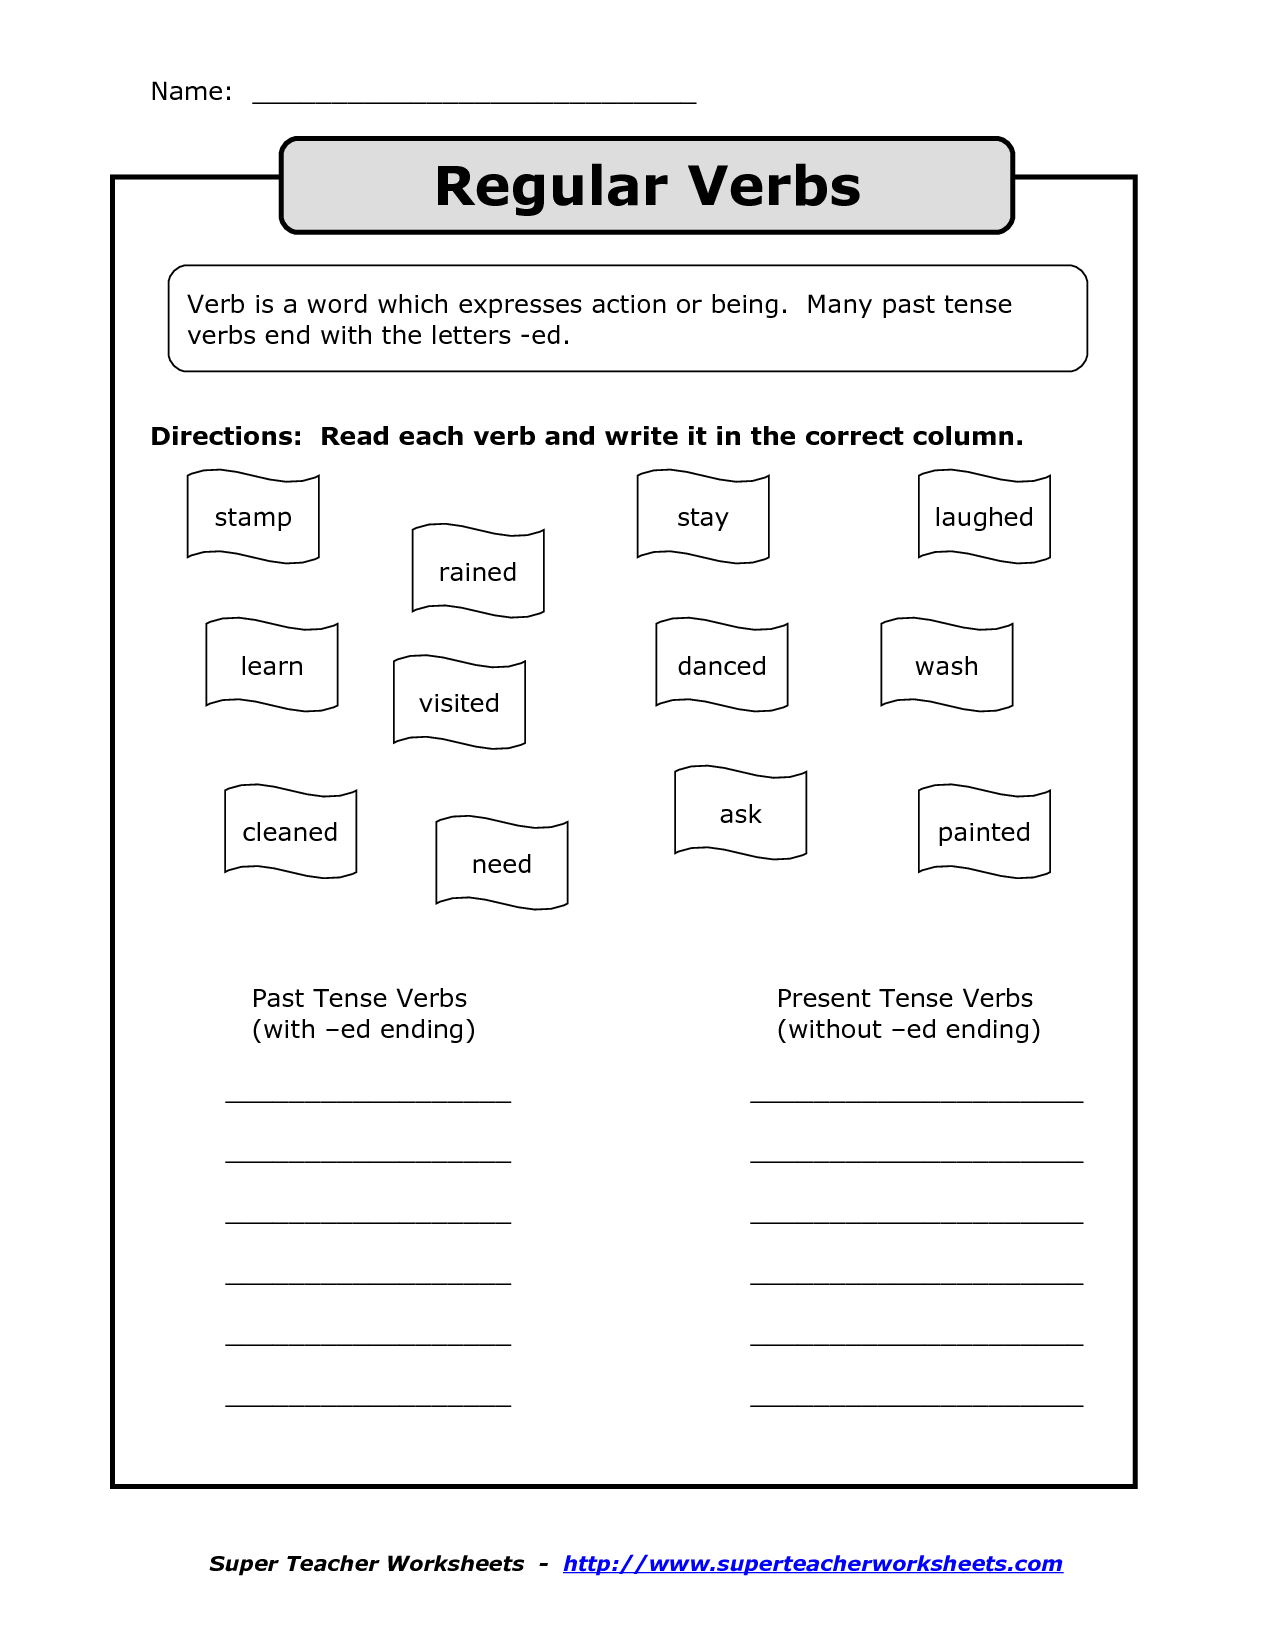 Regular Verbs Exercises Worksheet